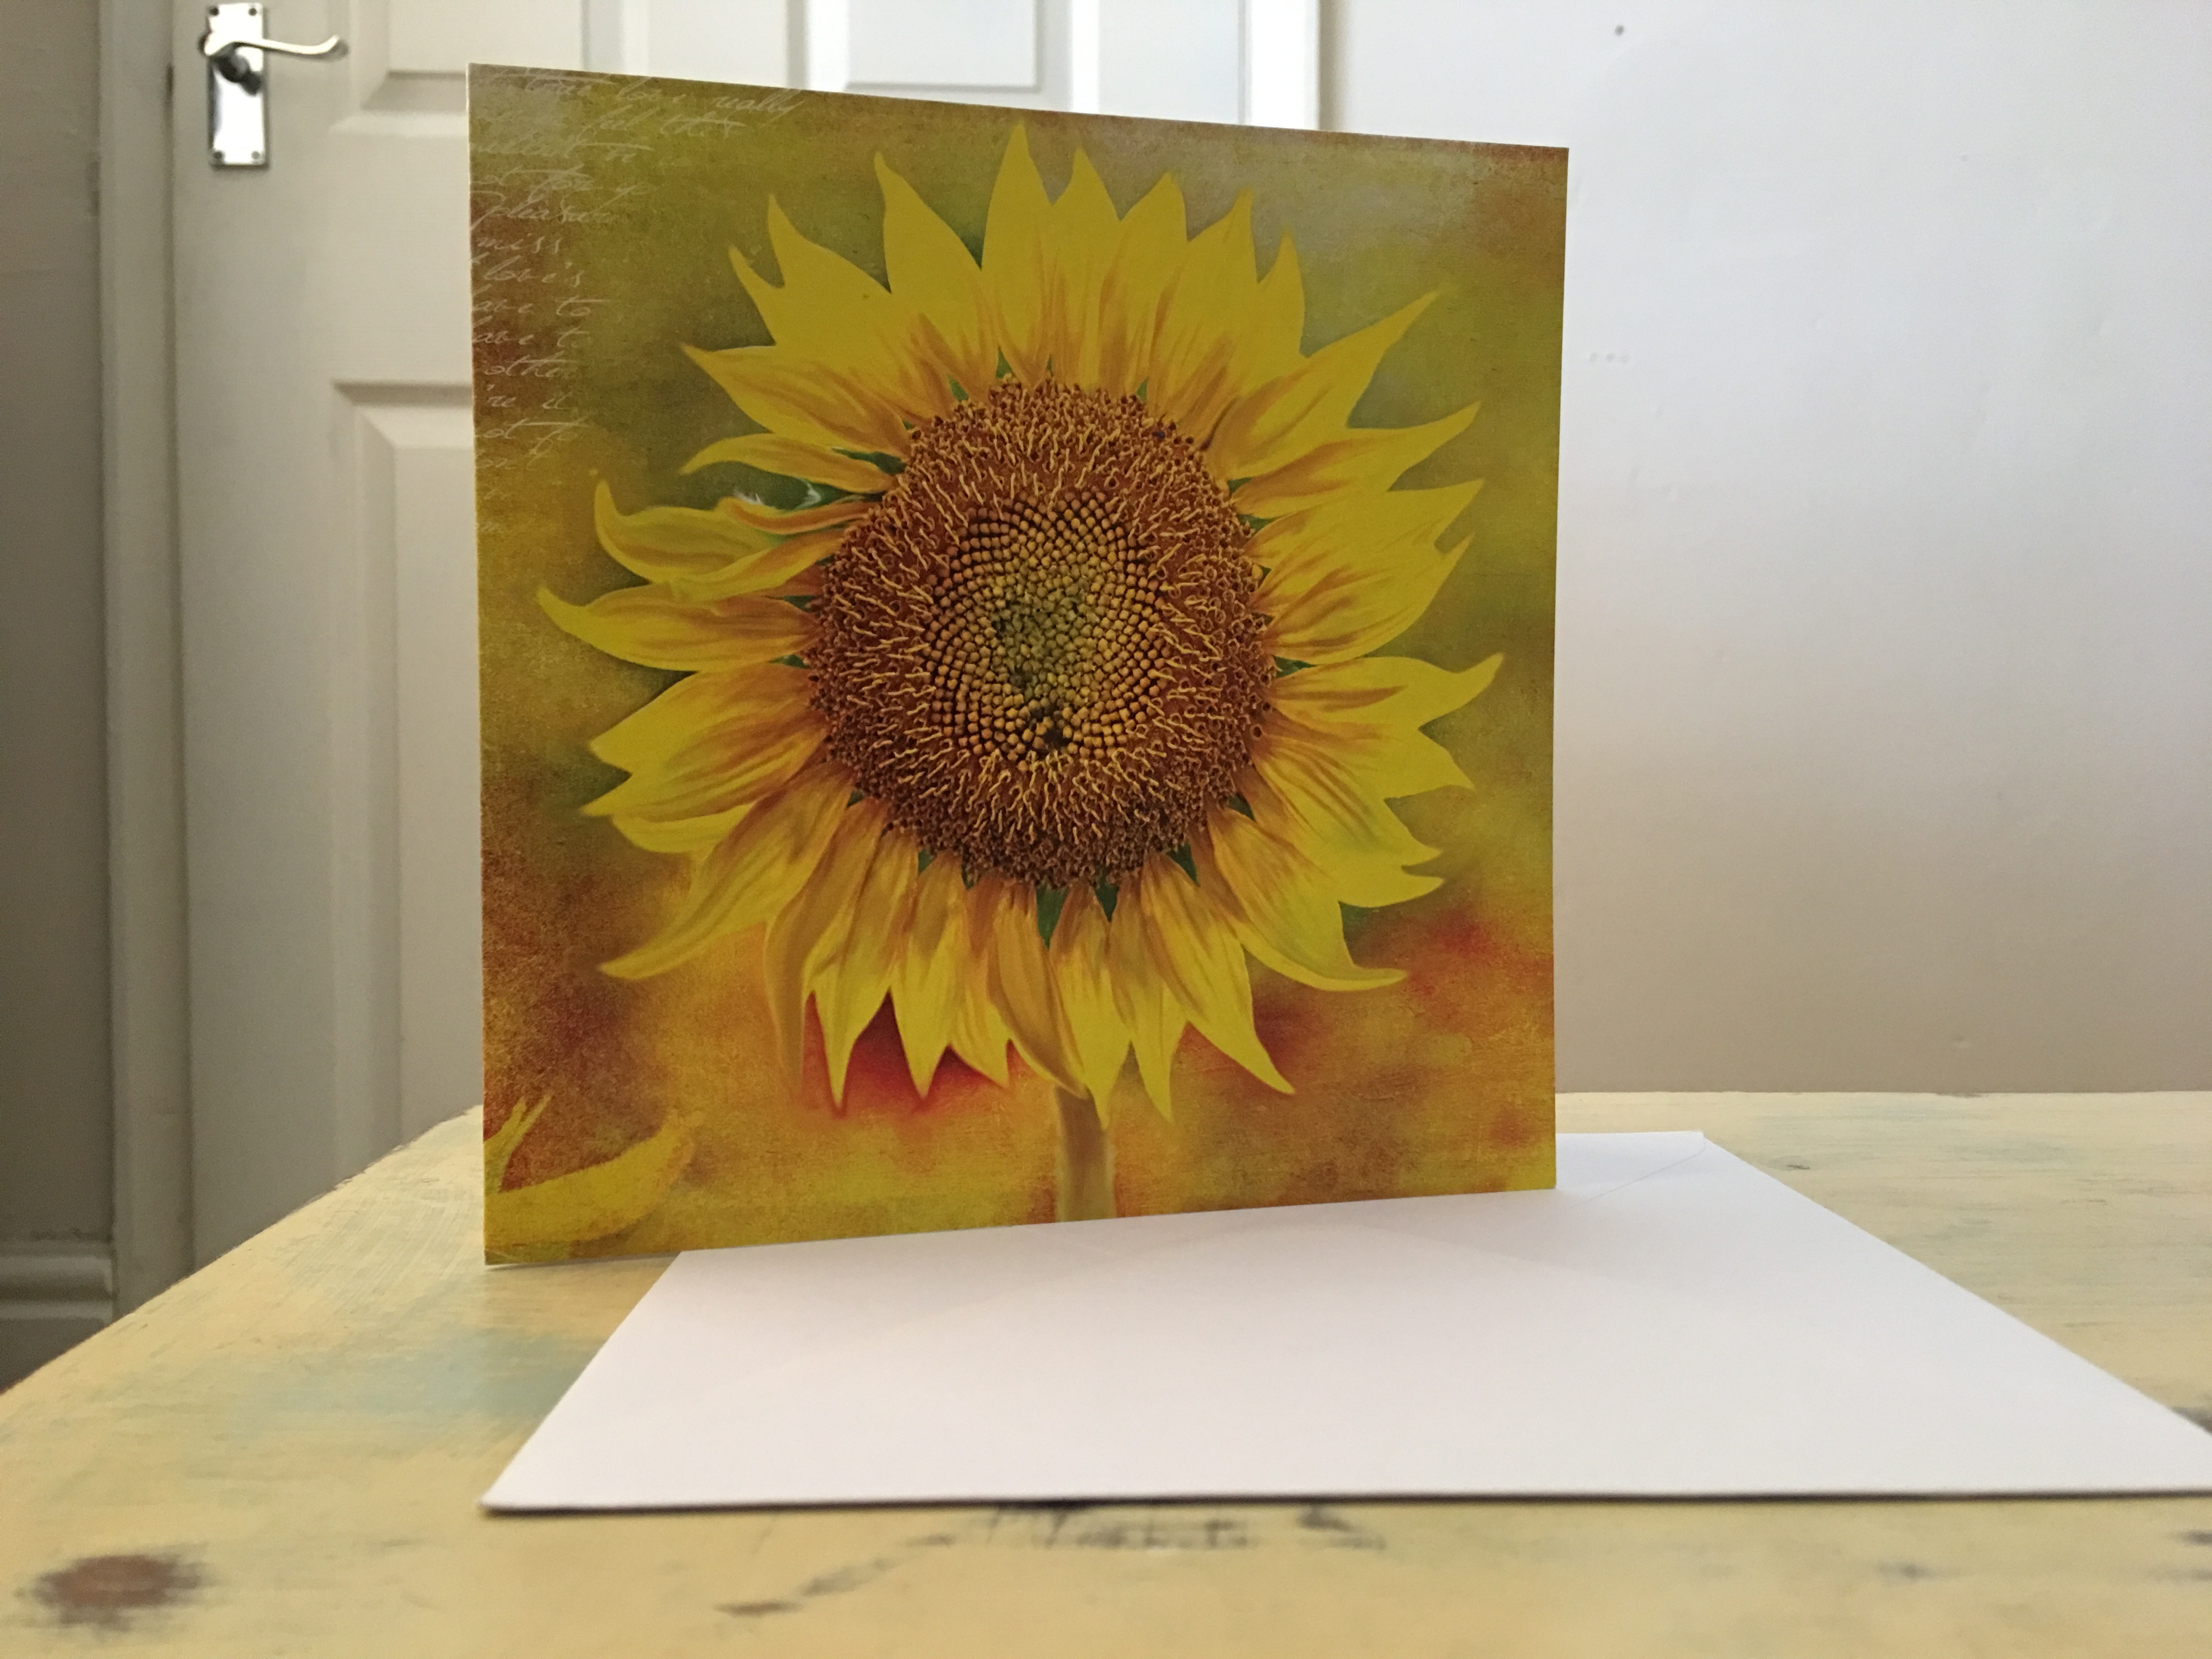 Greetings cards birthday cards christmas cards blank cards the almanac gallery gaia golden sunflower greetings card by the great british card company printed in the uk photograph by authro 29 june 2017 kristyandbryce Gallery